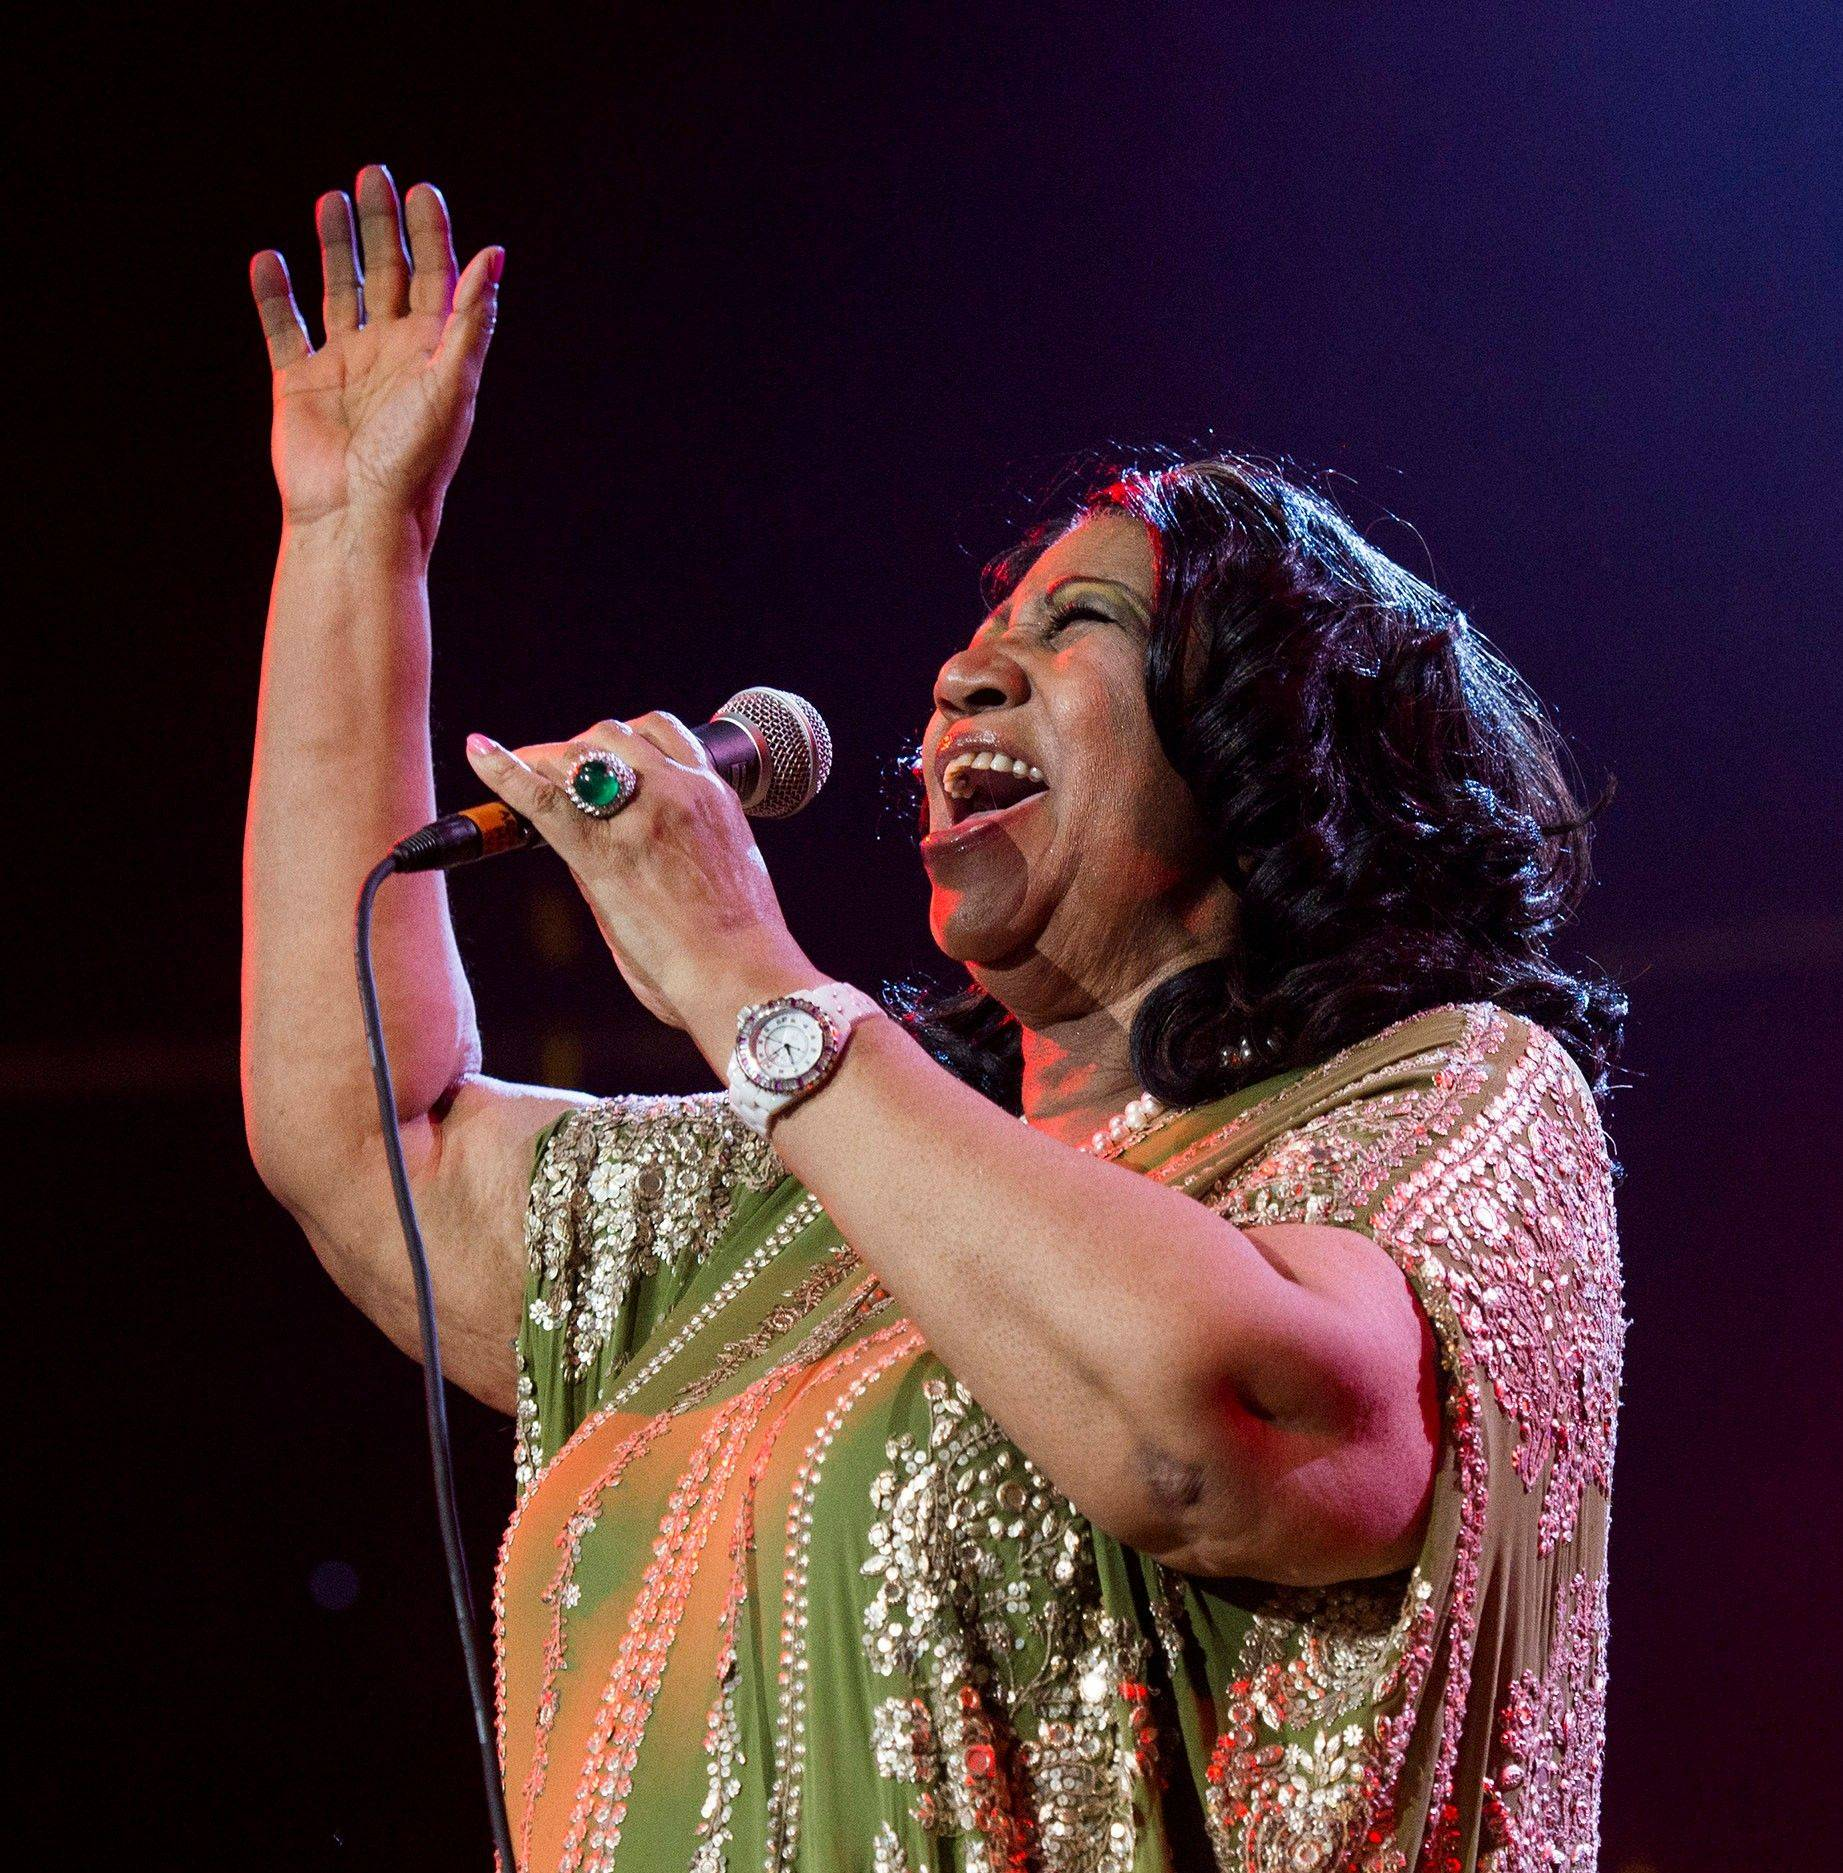 Aretha Franklin has canceled performances in Chicago on May 20 under a doctor's recommendation for treatment. It's unclear what sheís being treated for.